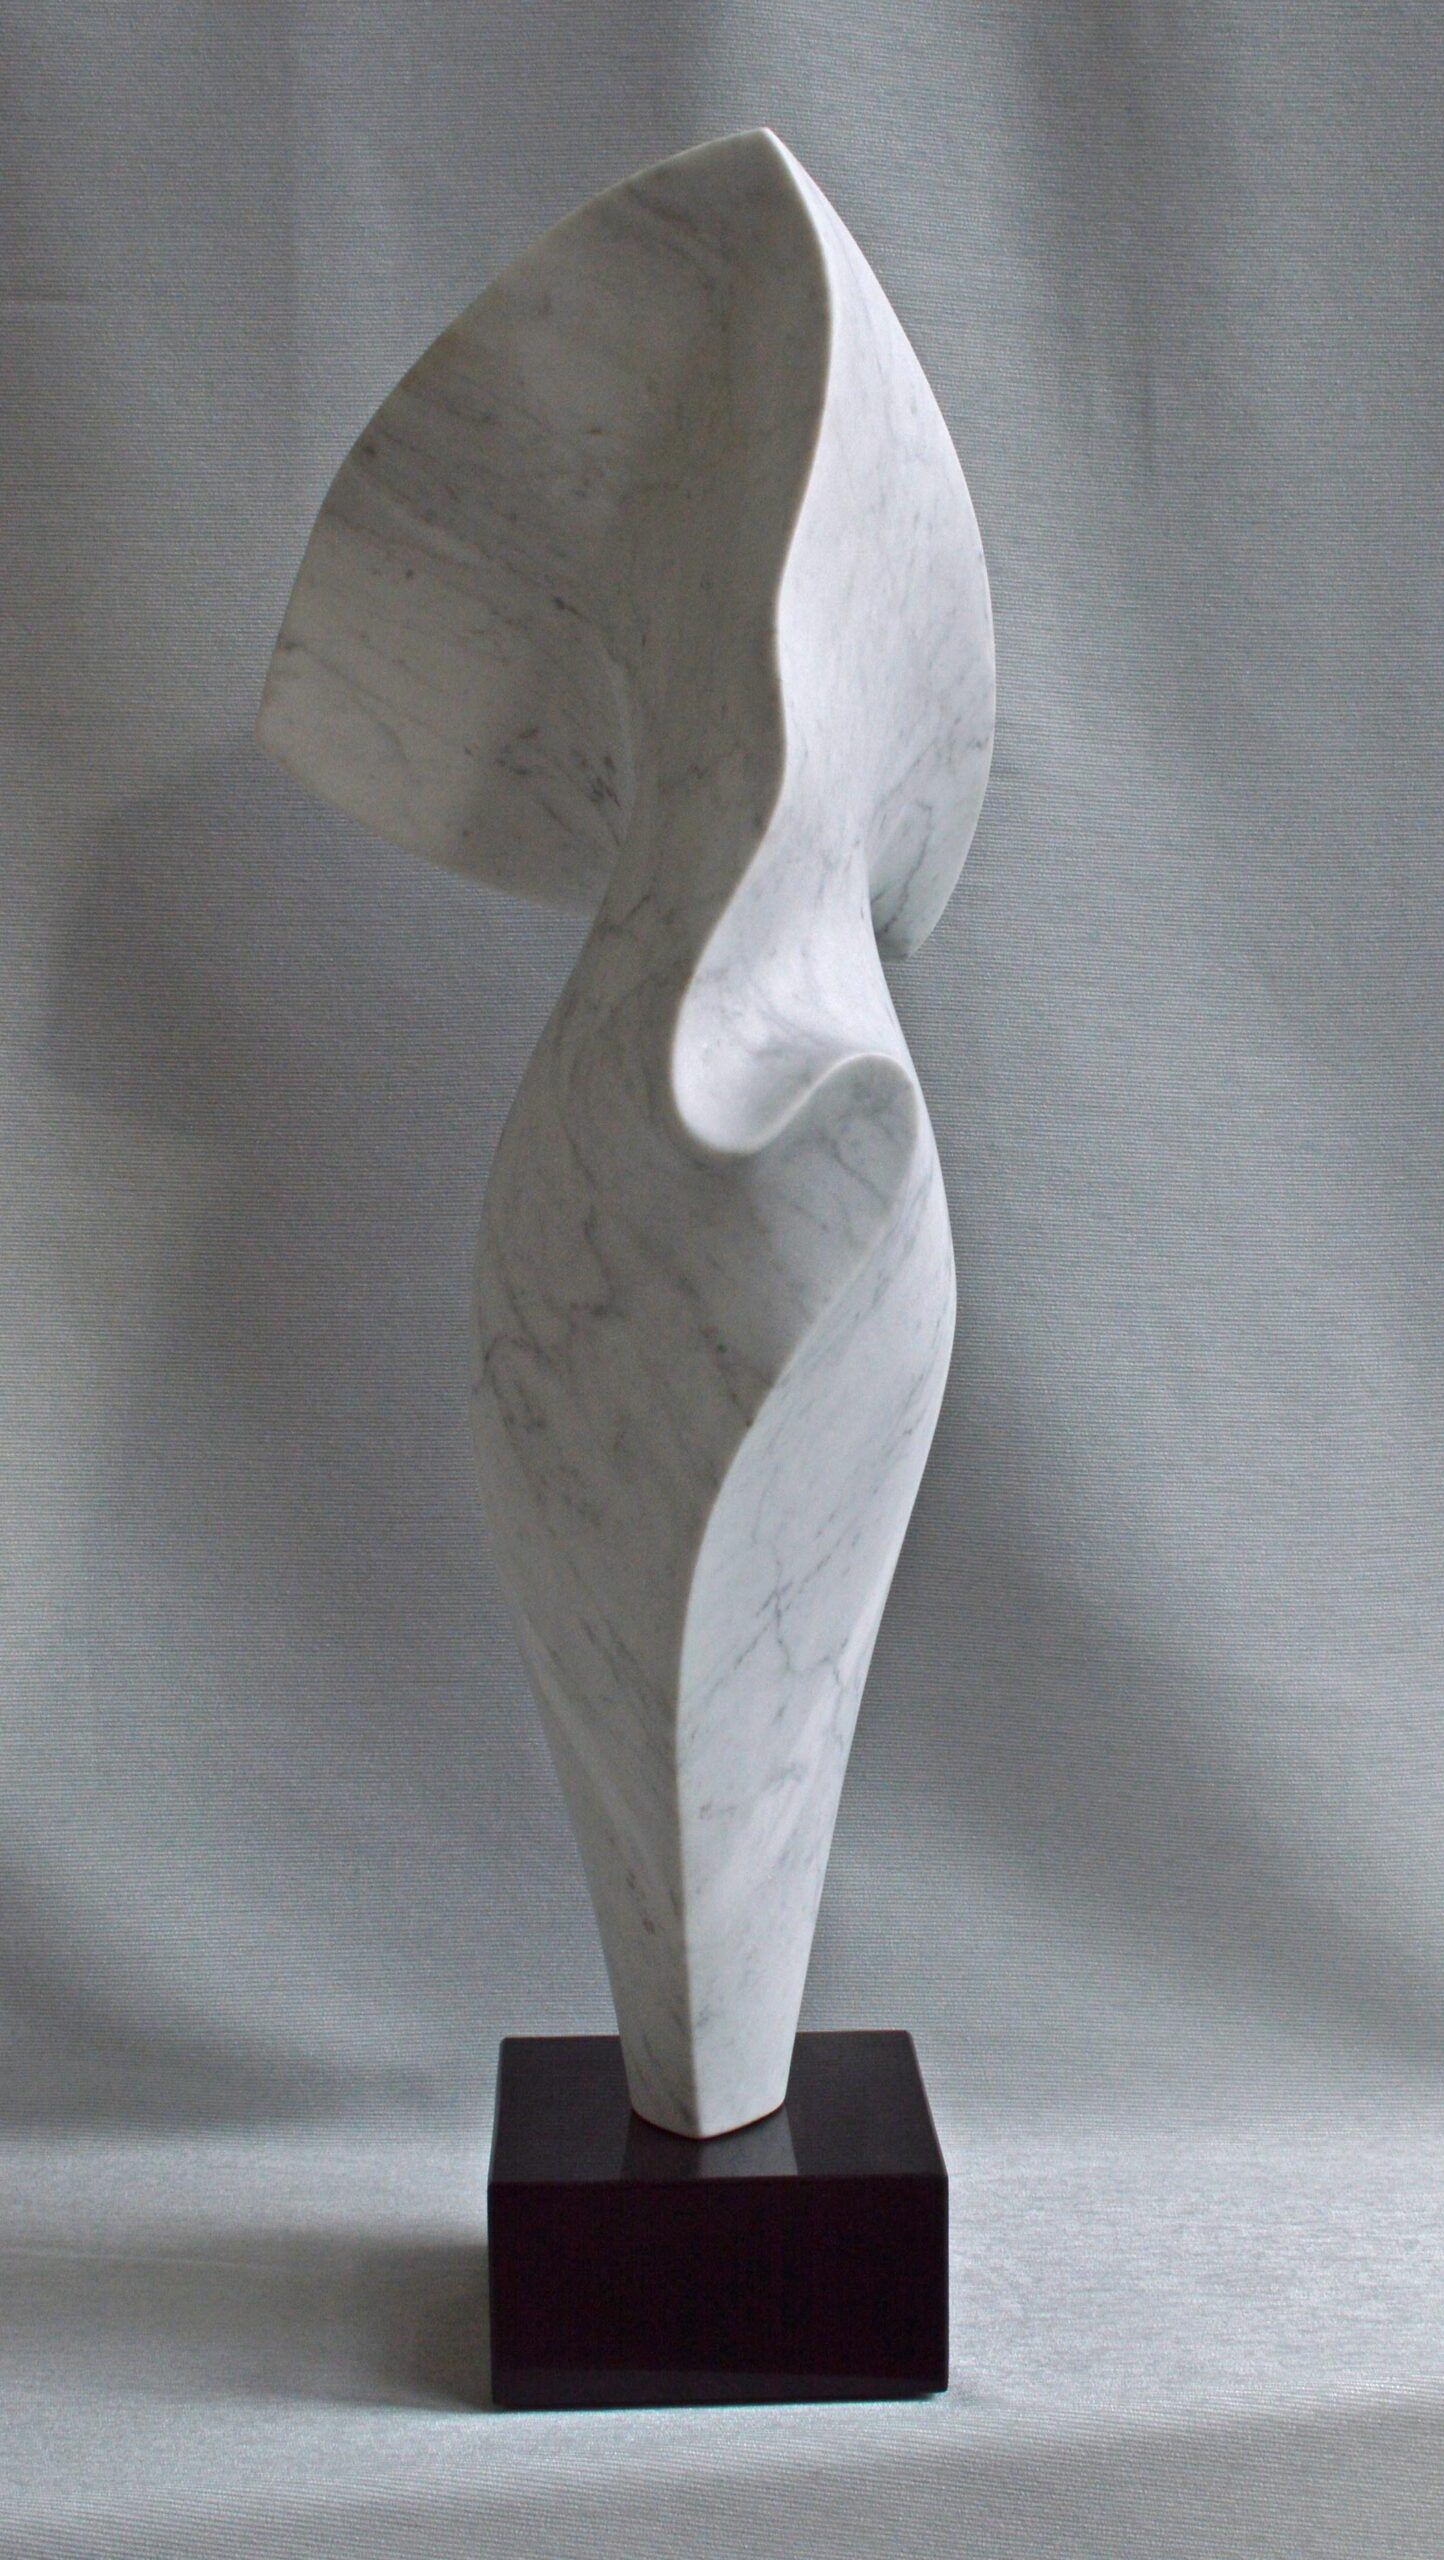 michael binkley sculptor stone sculpture artist abstract marble angel statue vancouver canada